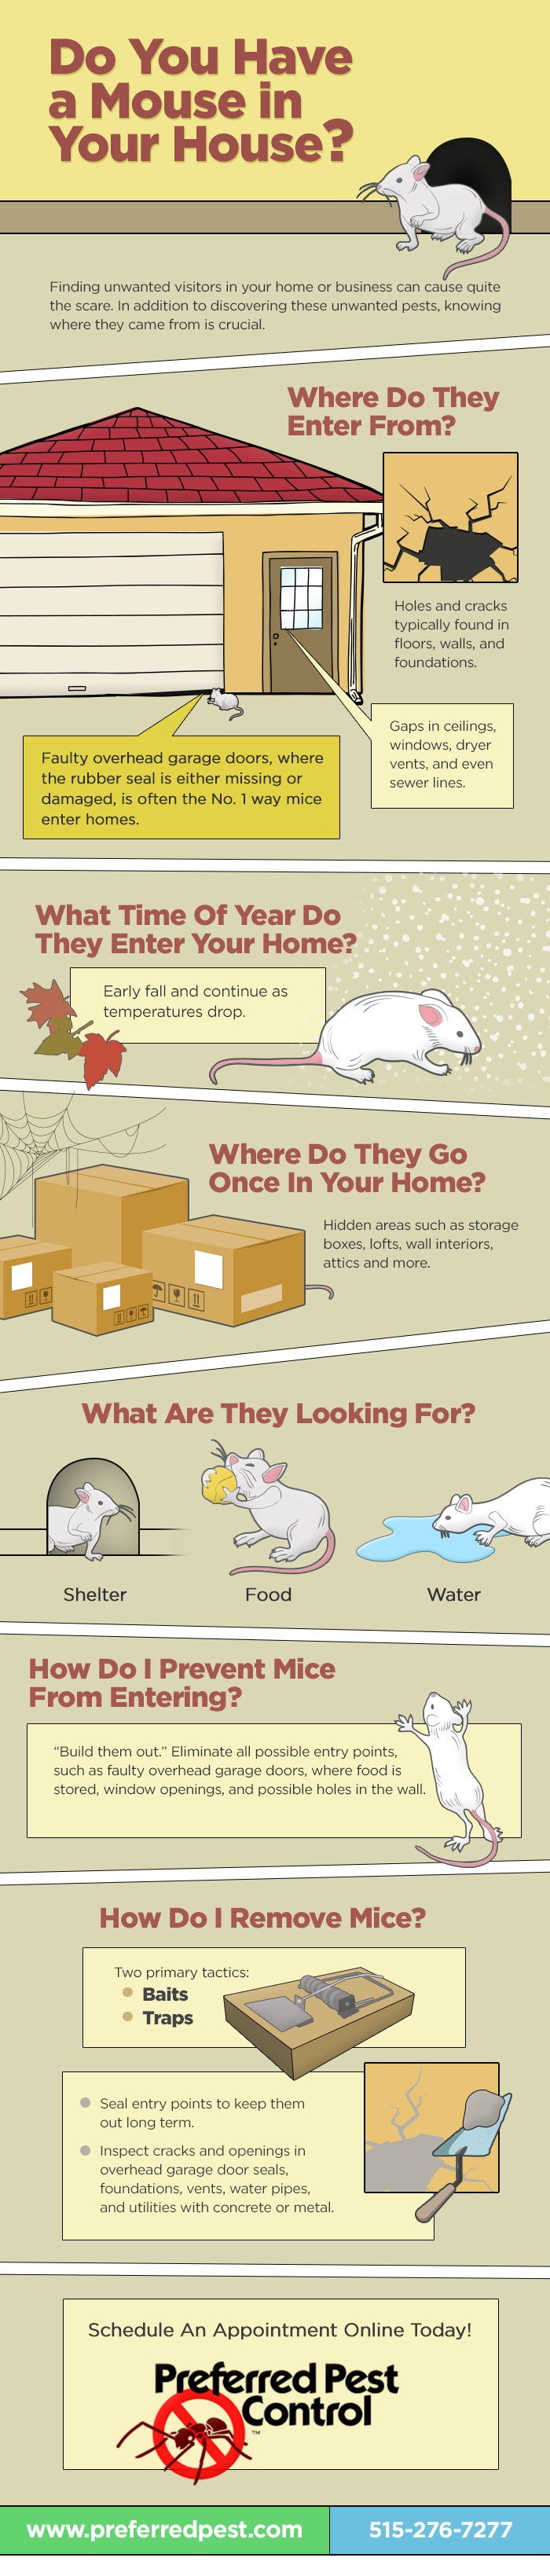 Mice, Preferred Pest Control, Mouse in Your House, Iowa Pest Control